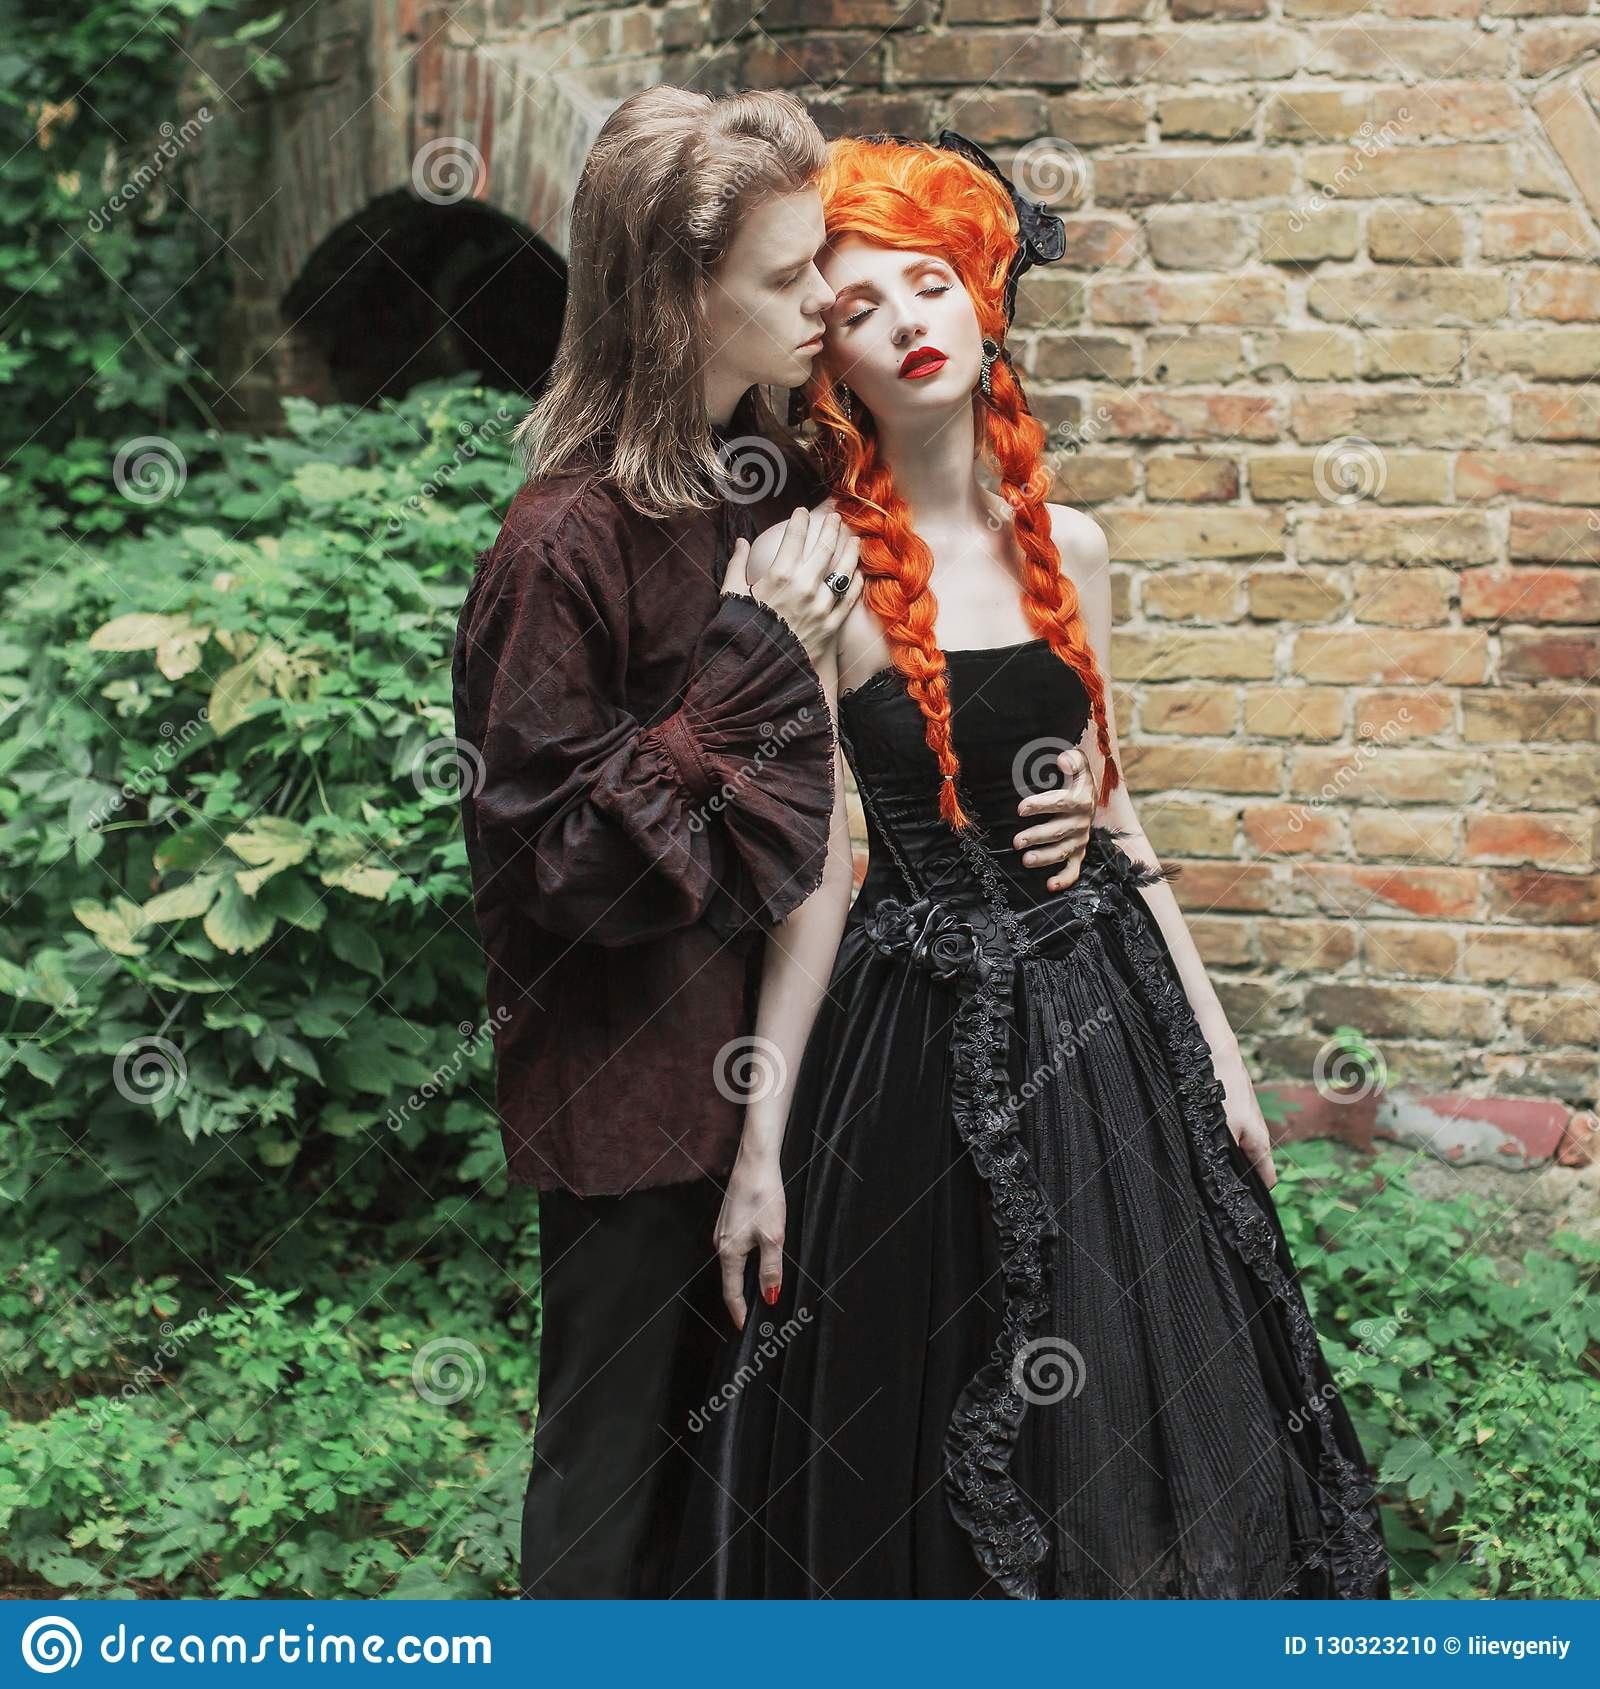 Gothic Couple Embracing In Halloween Costume Vampire In Victorian